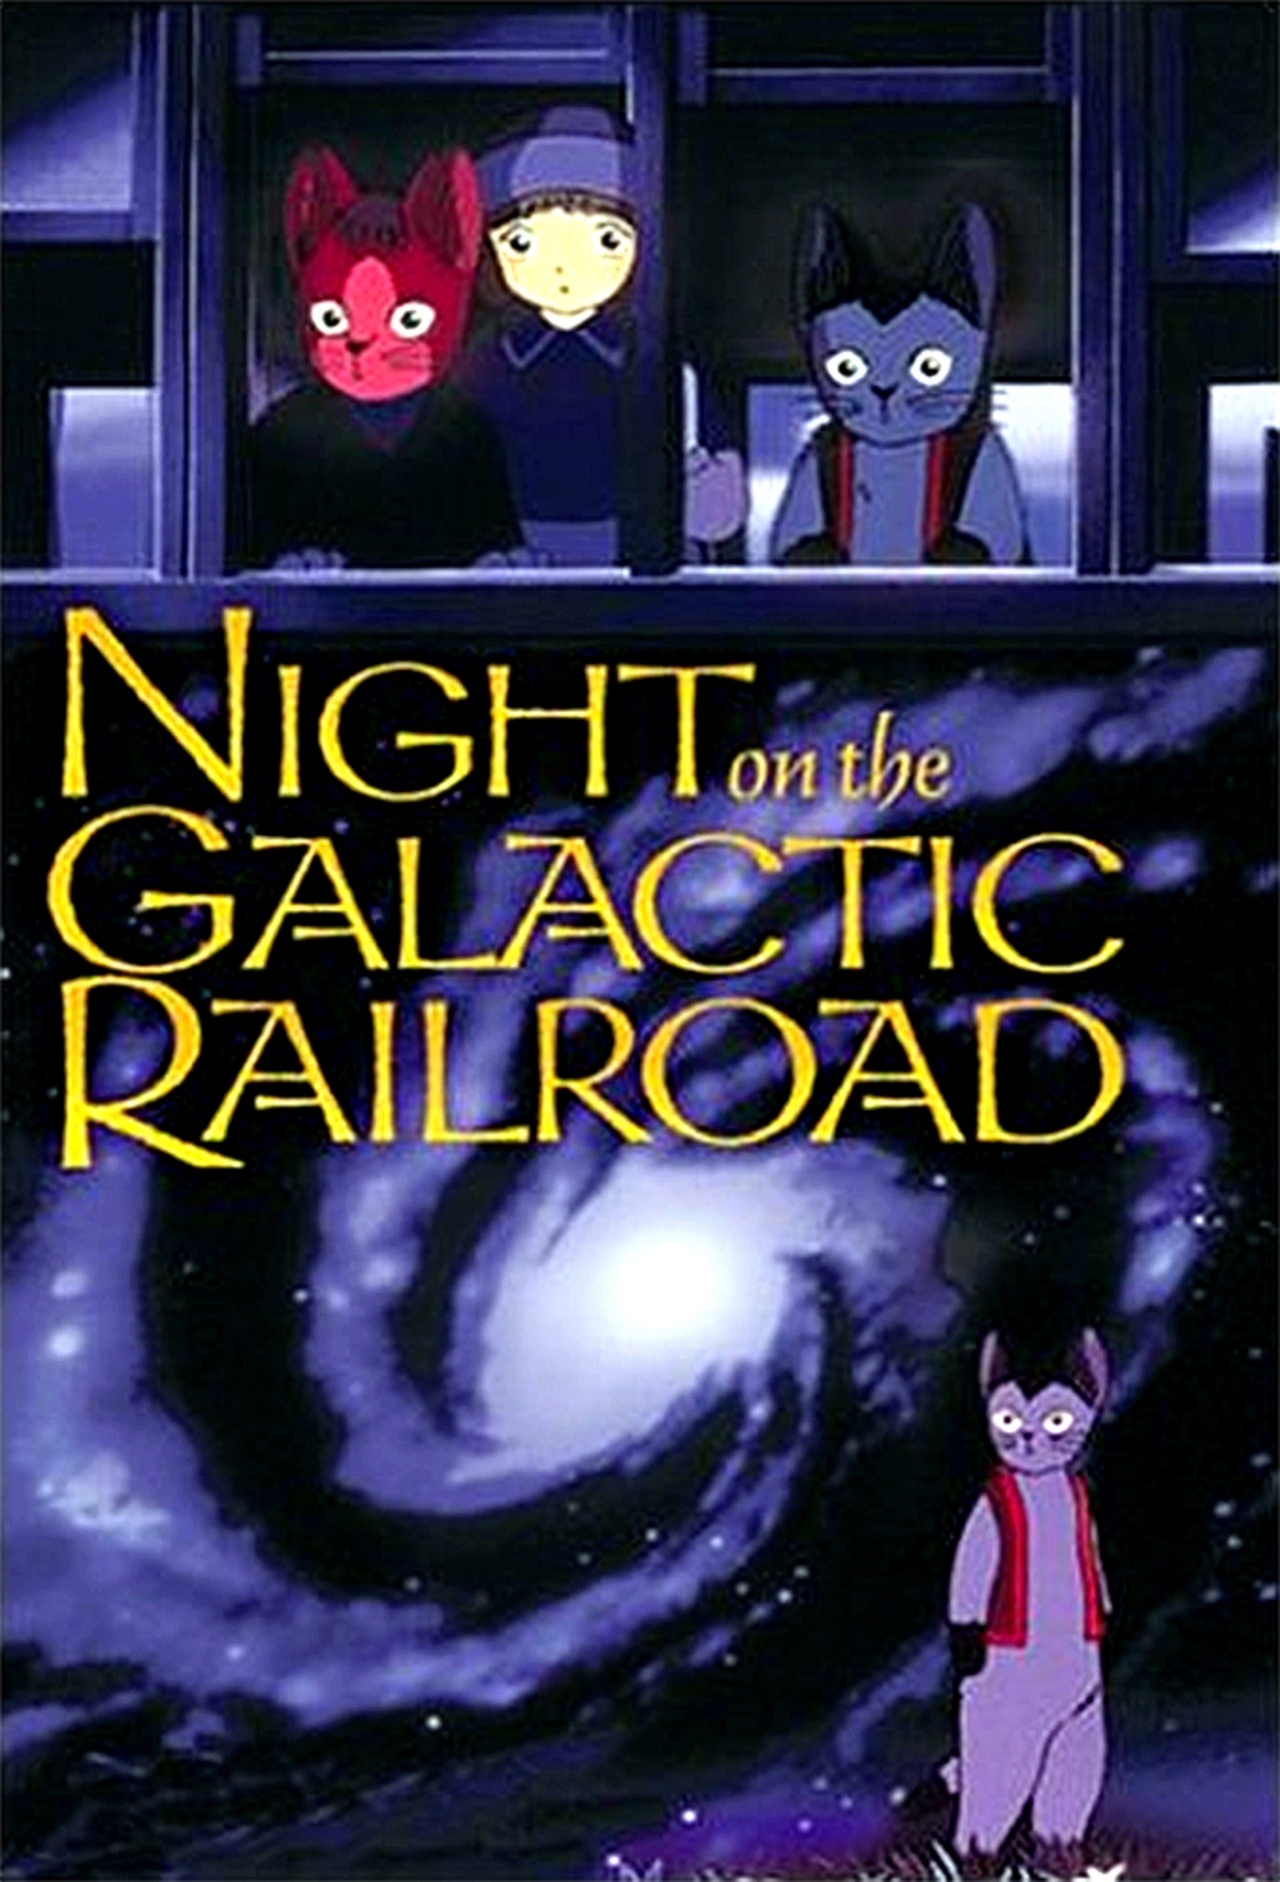 Kenji Miyazawa's Night on the Galactic Railroad kapak